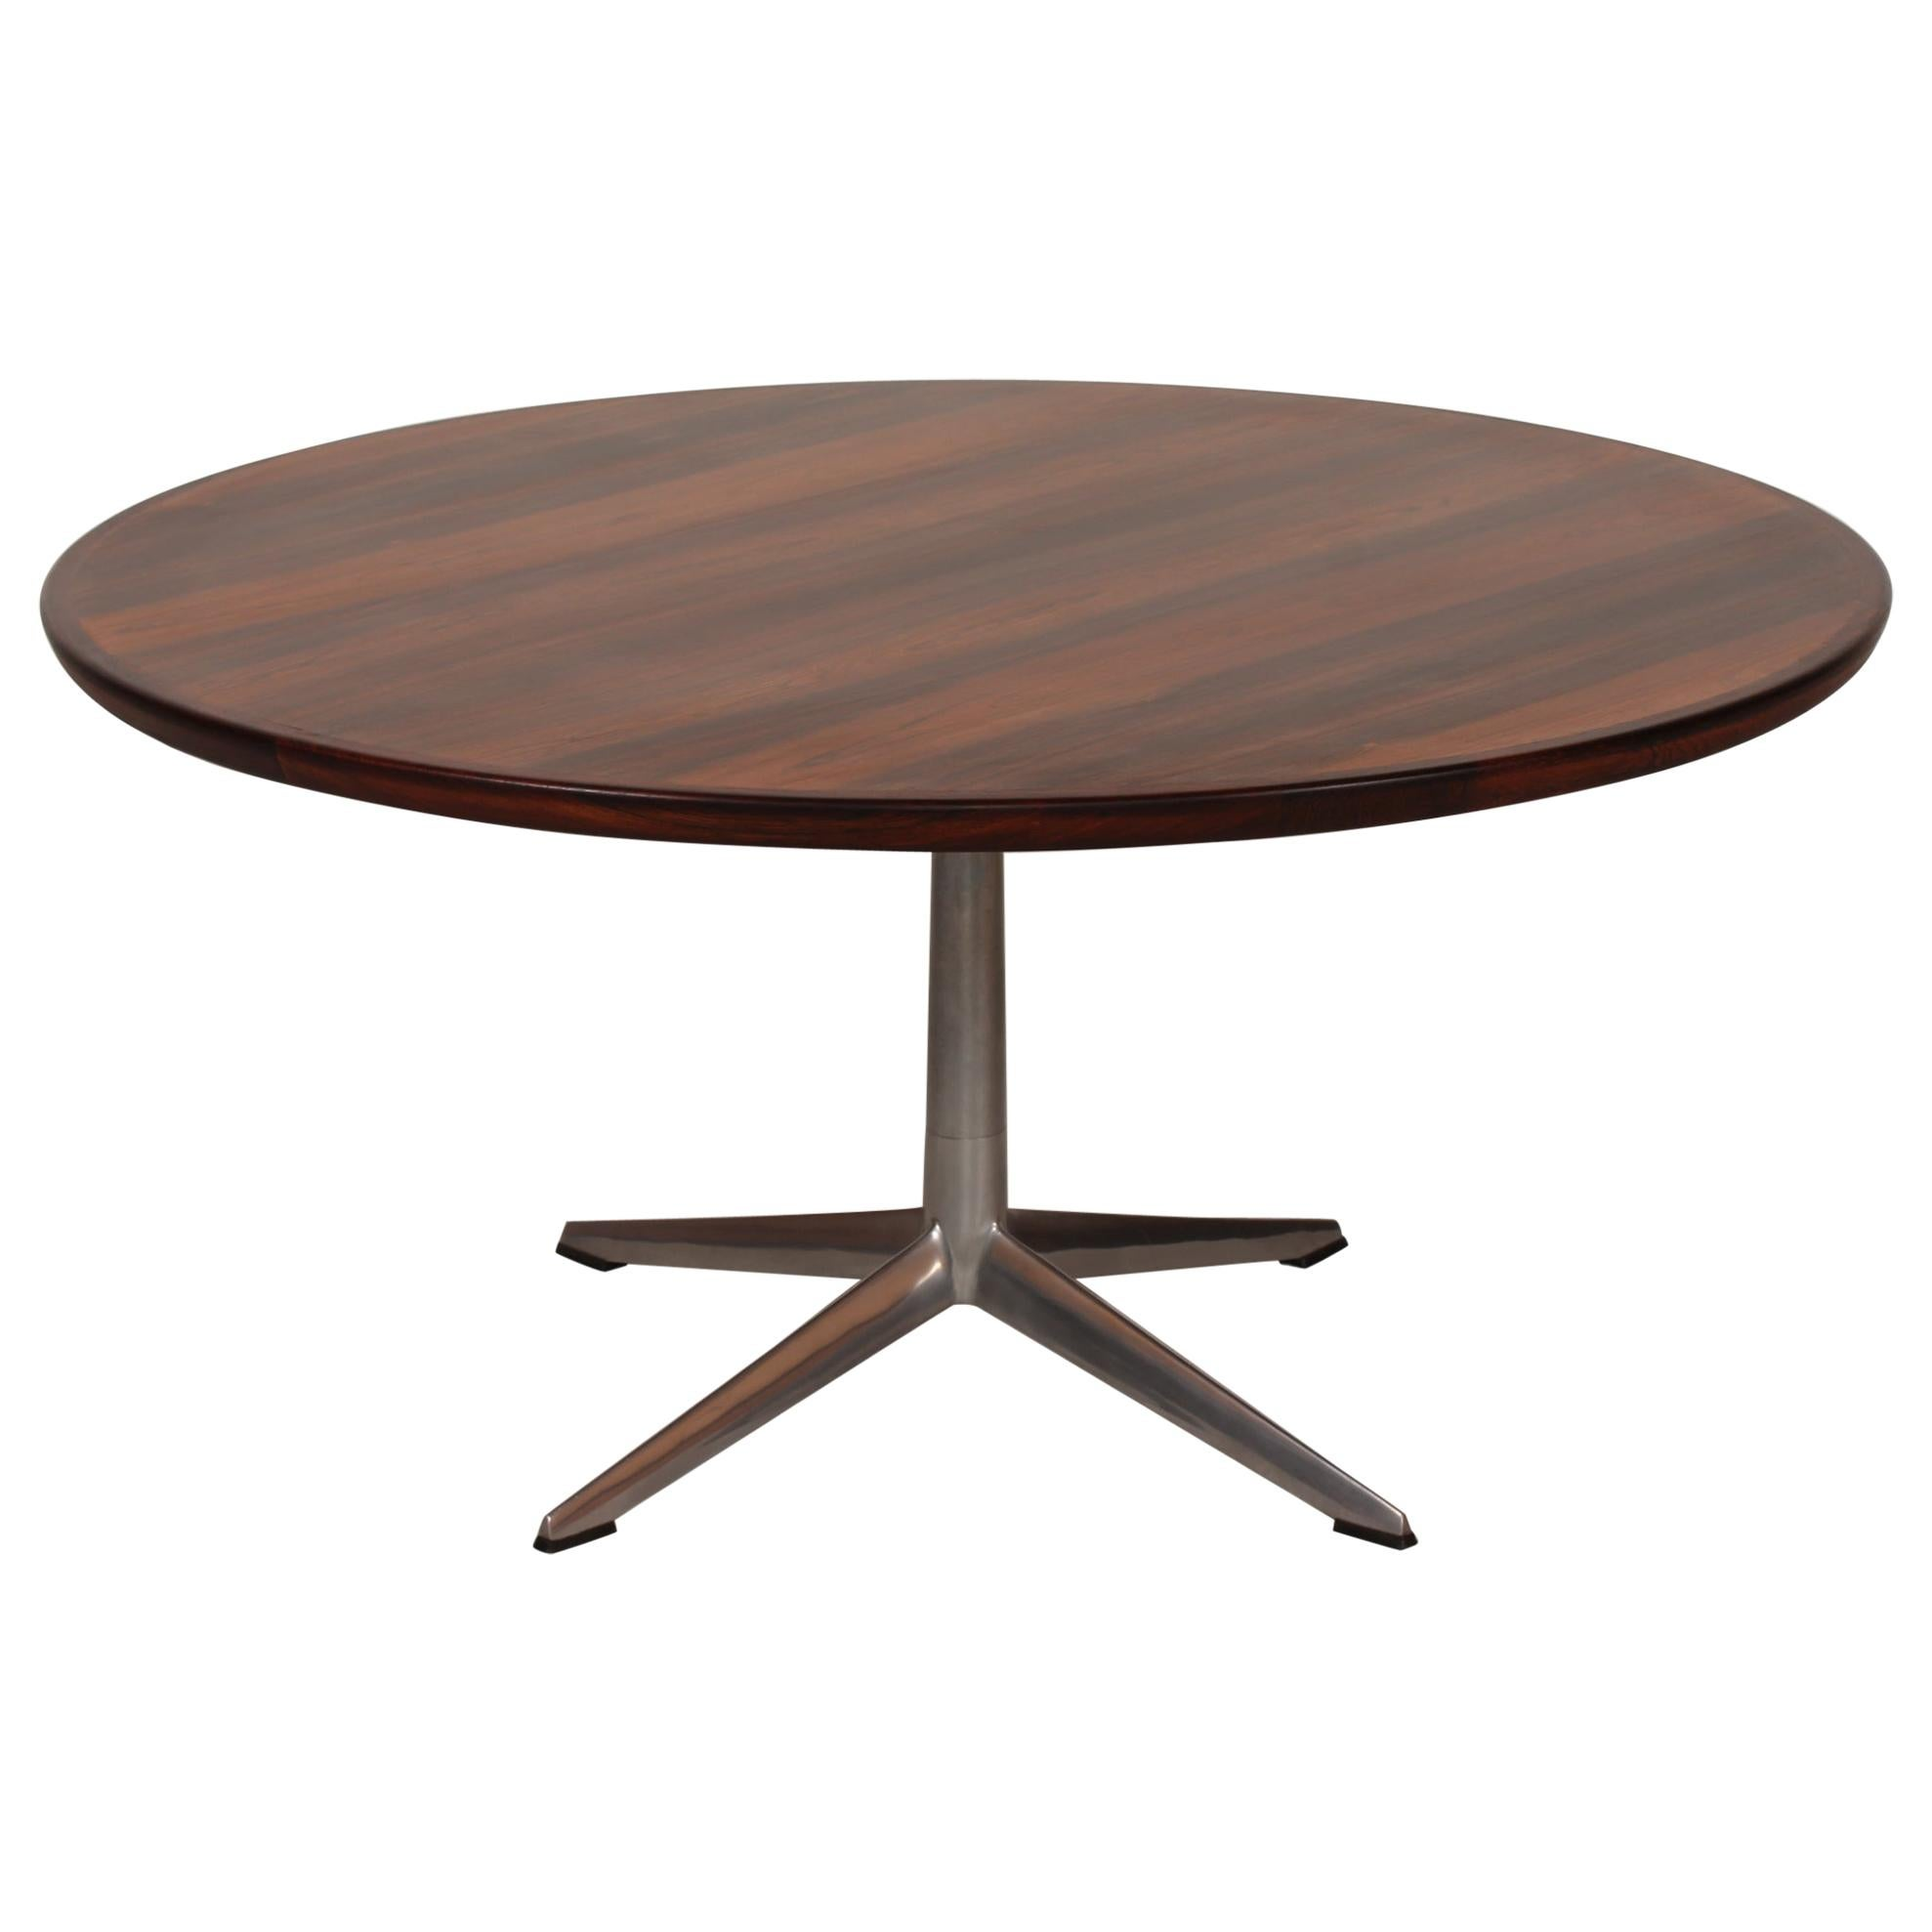 H. W. Klein Round Rosewood Coffee Table by Bramin Møbler in Denmark in the 1960s